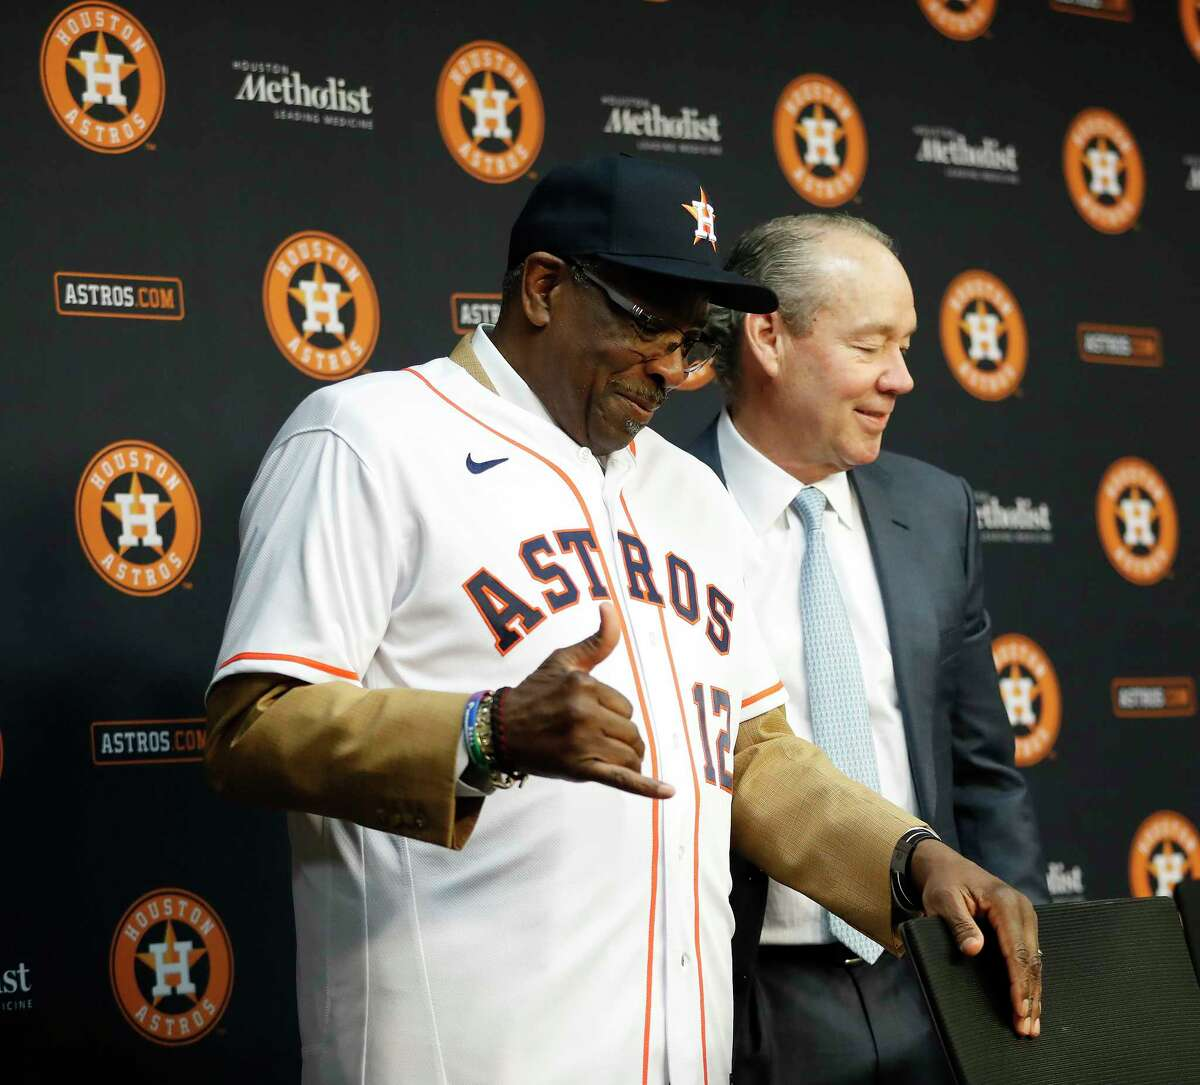 Dusty Baker reacts after putting on his Houston Astros baseball cap, as owner Jim Crane introduced him as the Astros new manager at Minute Maid Park, in Houston, Thursday, Jan. 30, 2020.